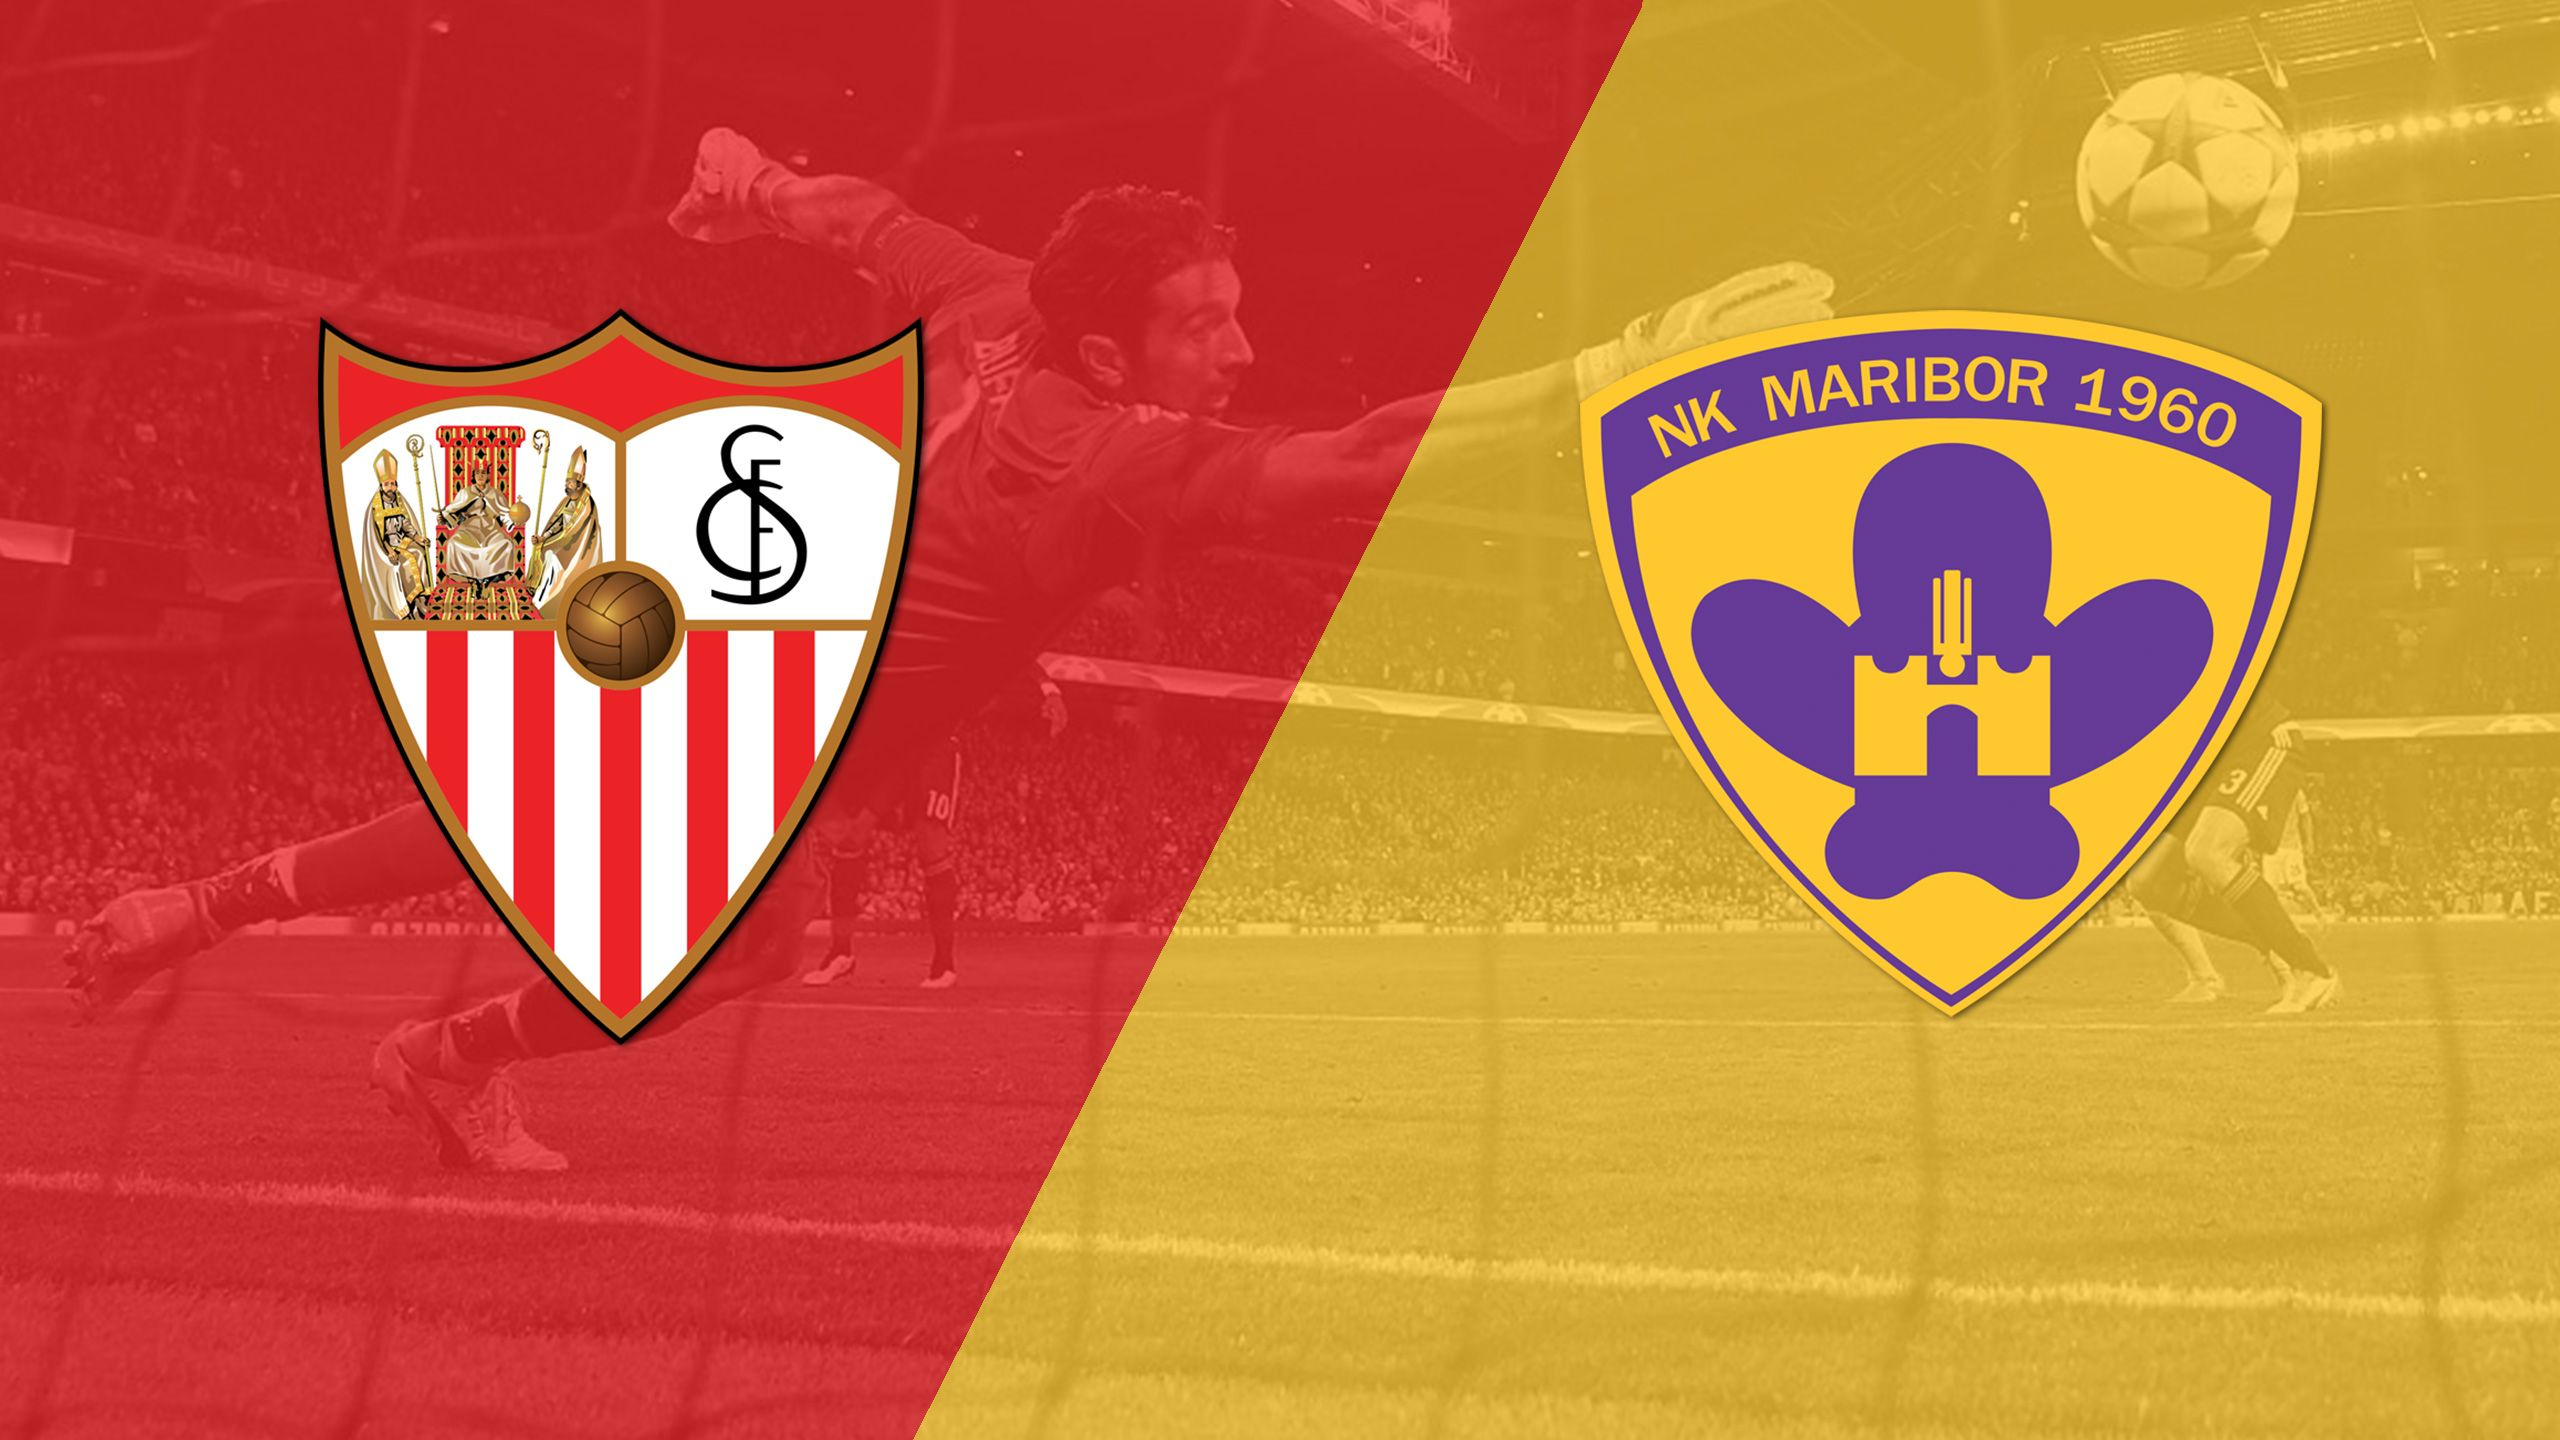 Sevilla vs. NK Maribor (Group Stage) (UEFA Champions League)